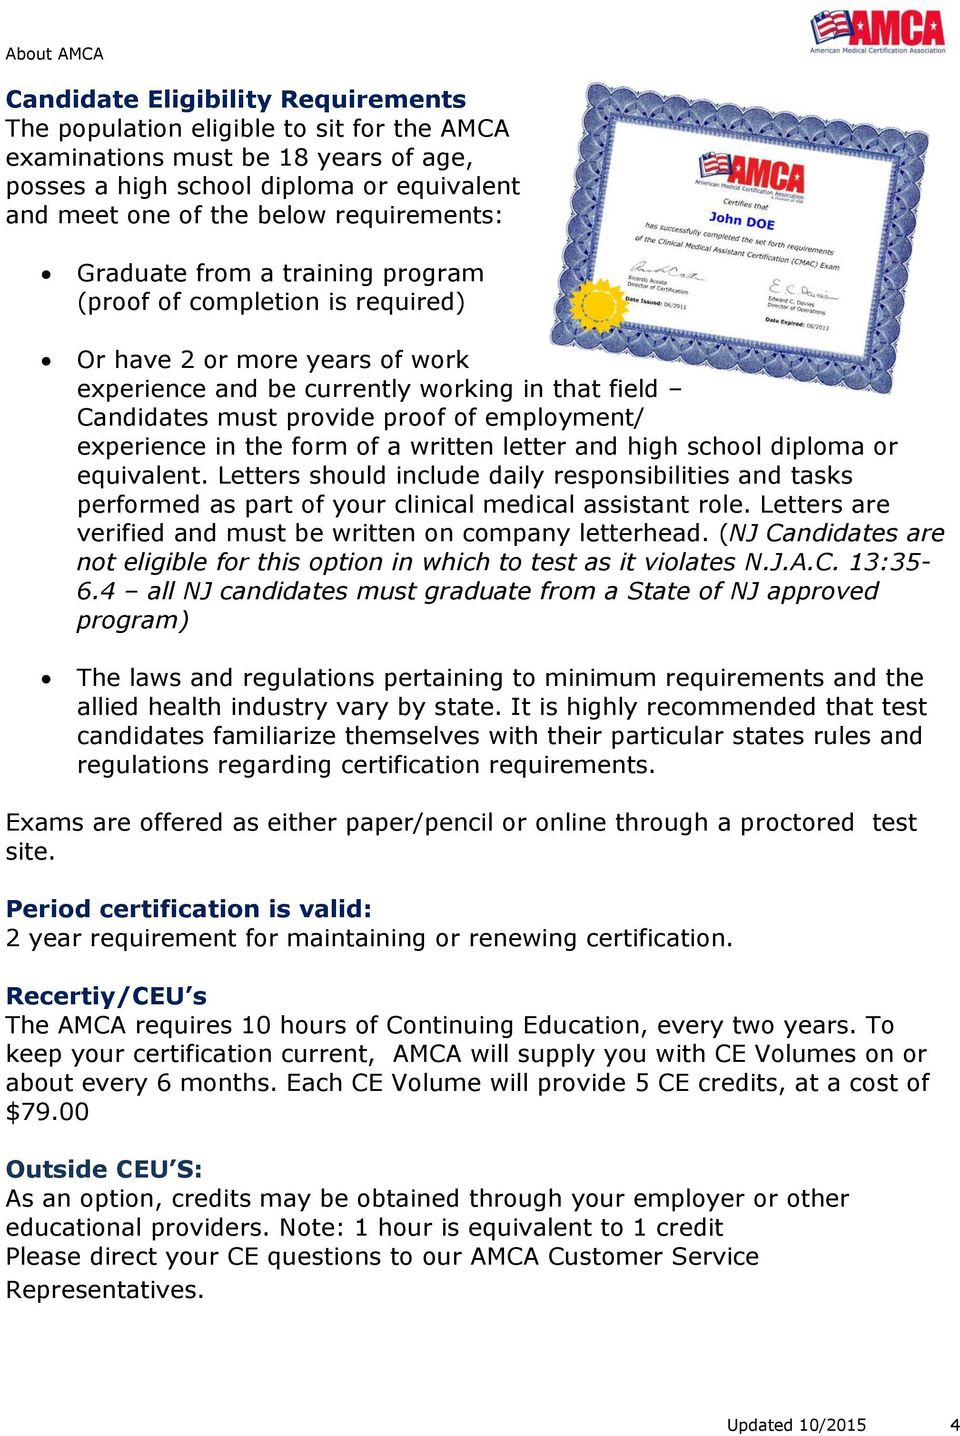 About Amca We Offer National Certification Exams That Support And